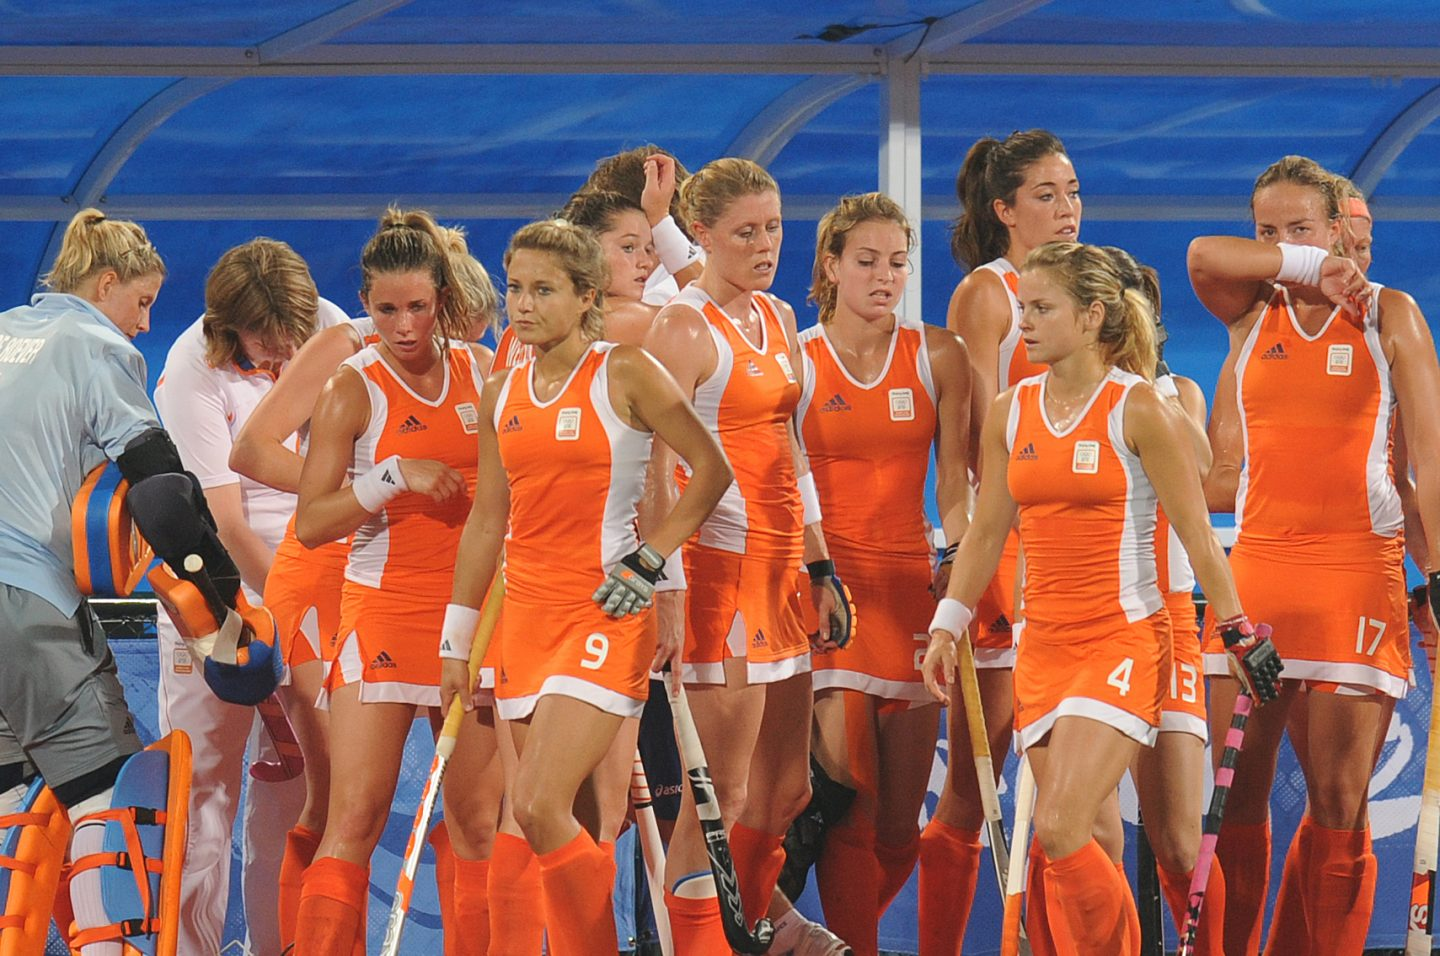 Picture of the Dutch women's hockey team waering their orange dresses